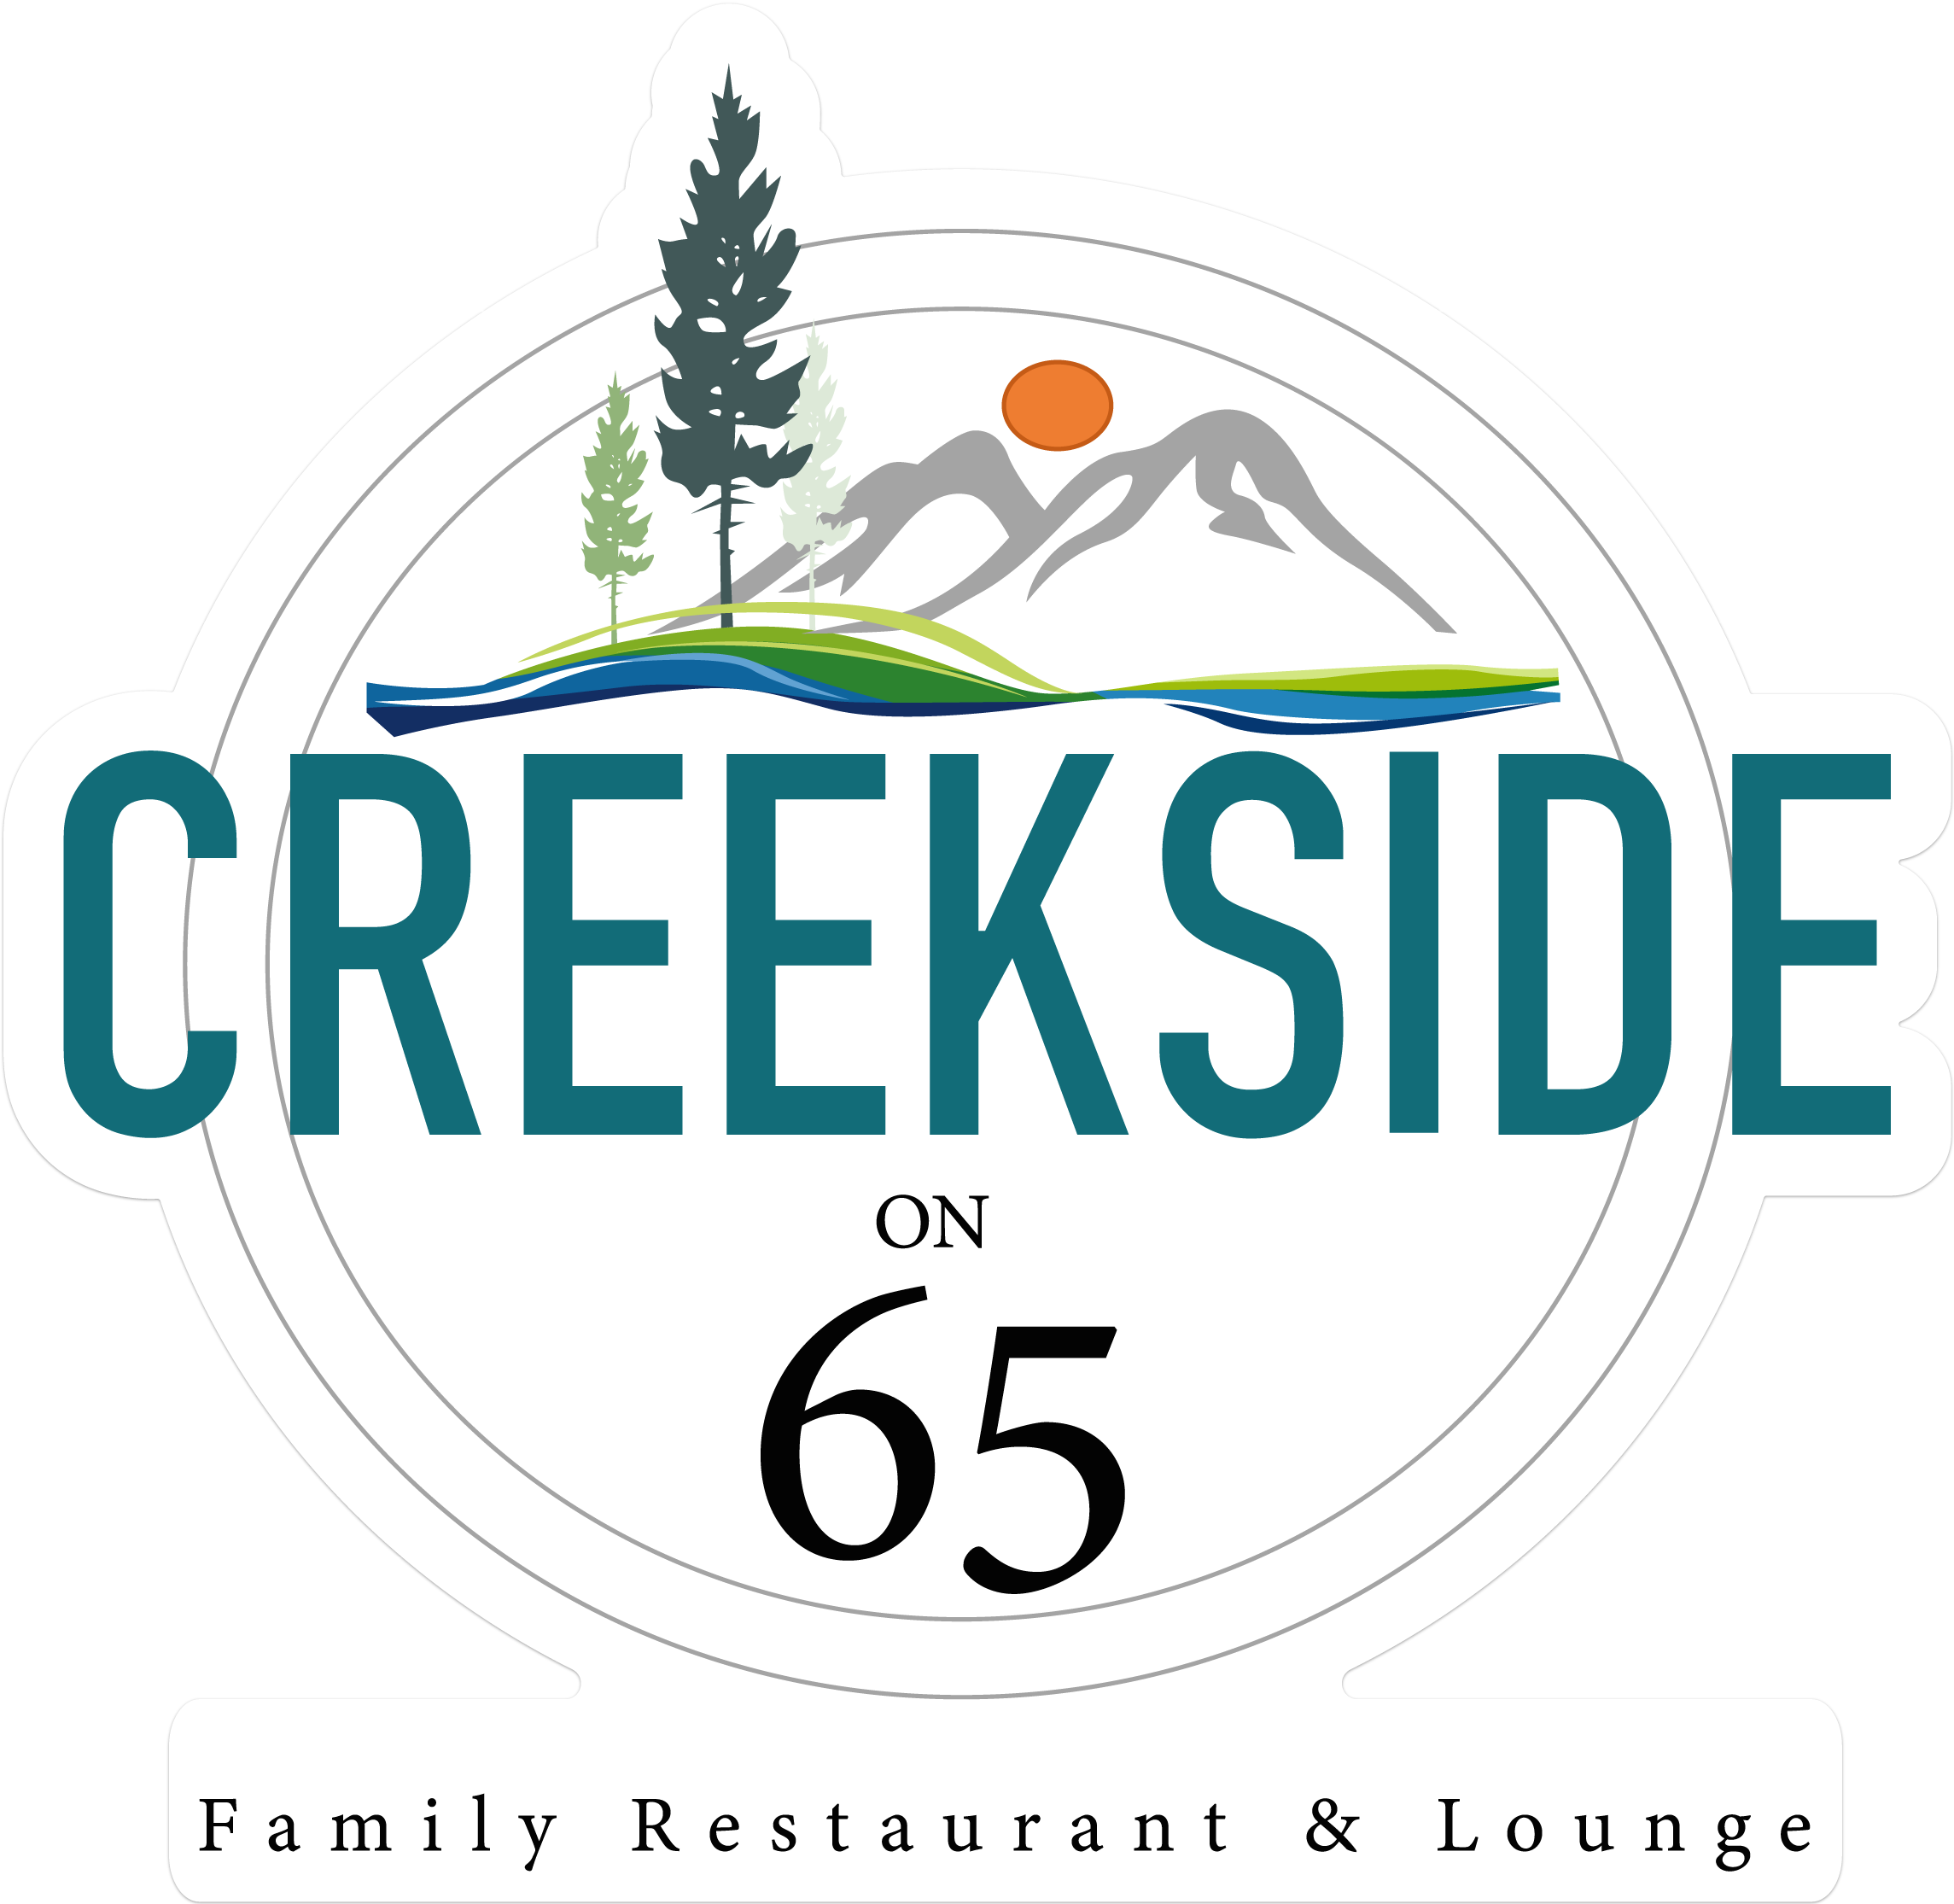 Cedaredge Creekside Cafe Home